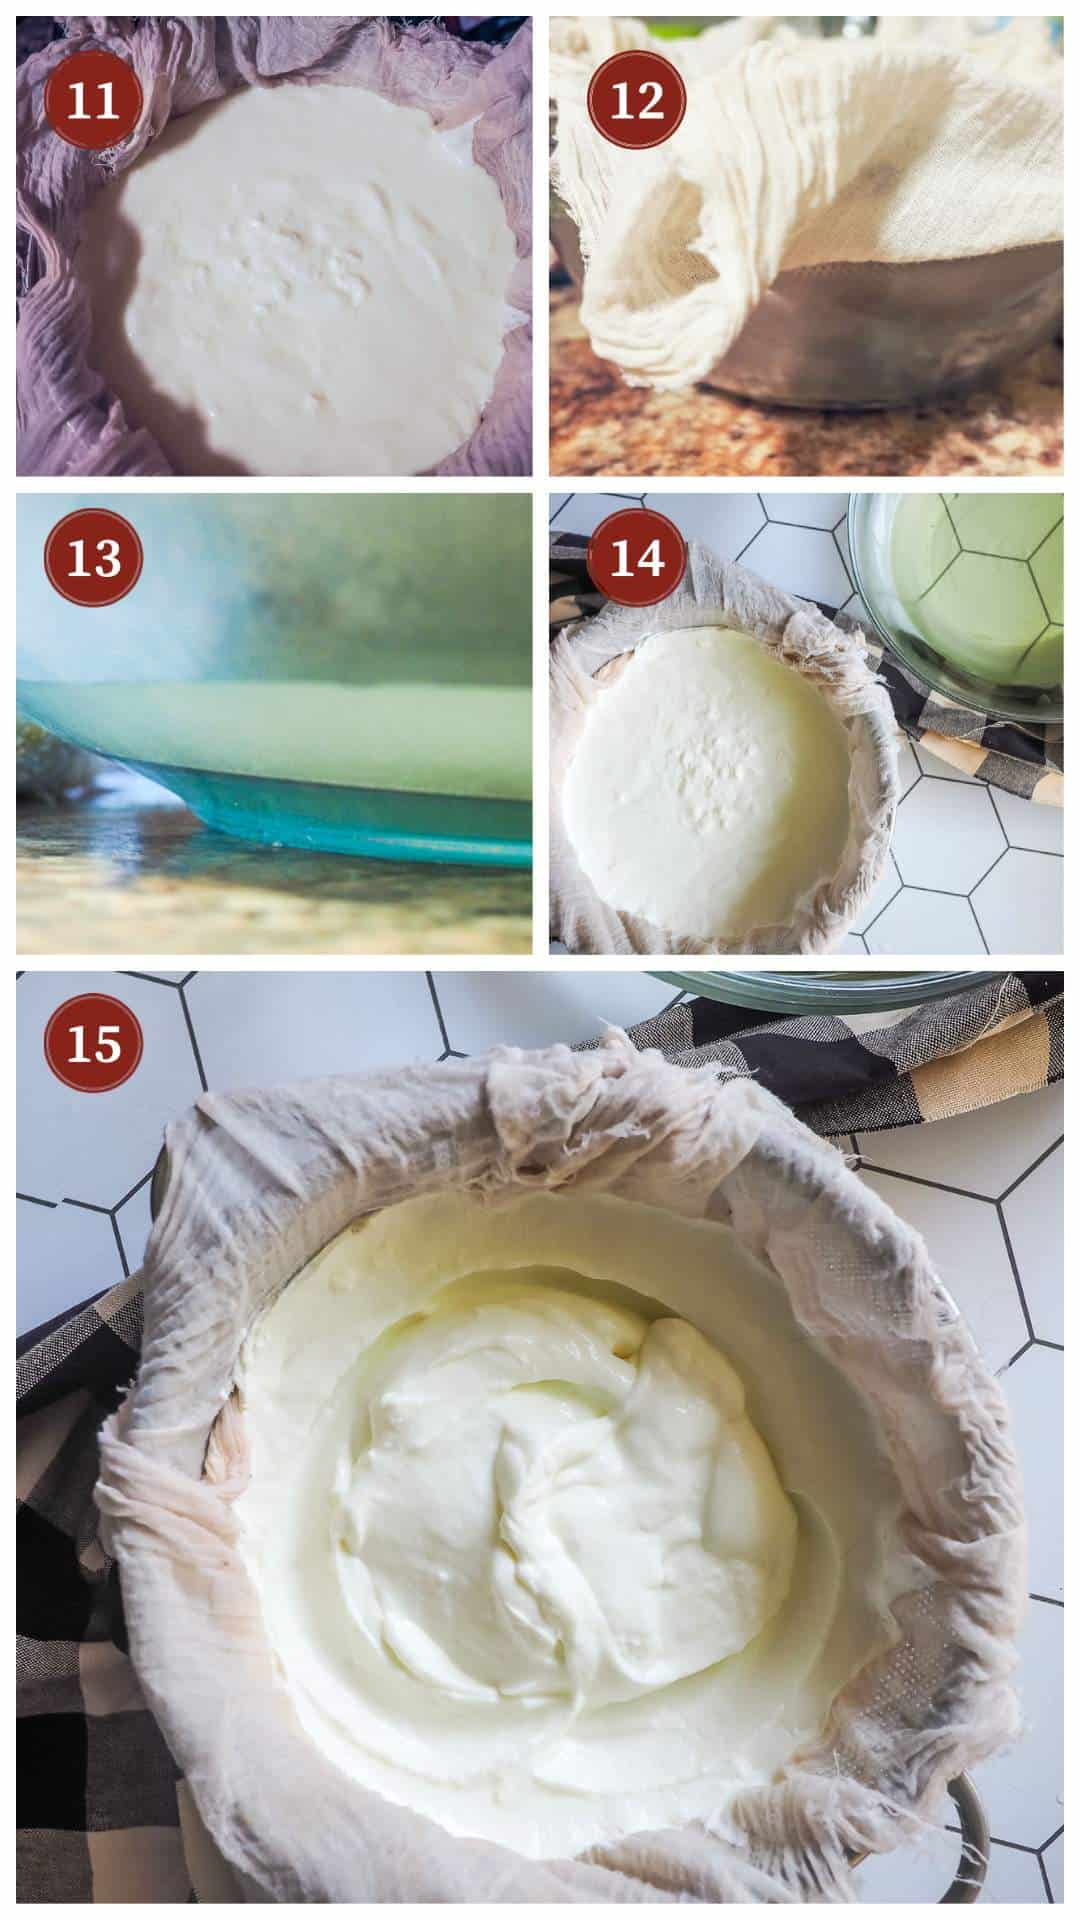 A collage of images showing the process of making yogurt in an Instant Pot, steps 11 - 15.